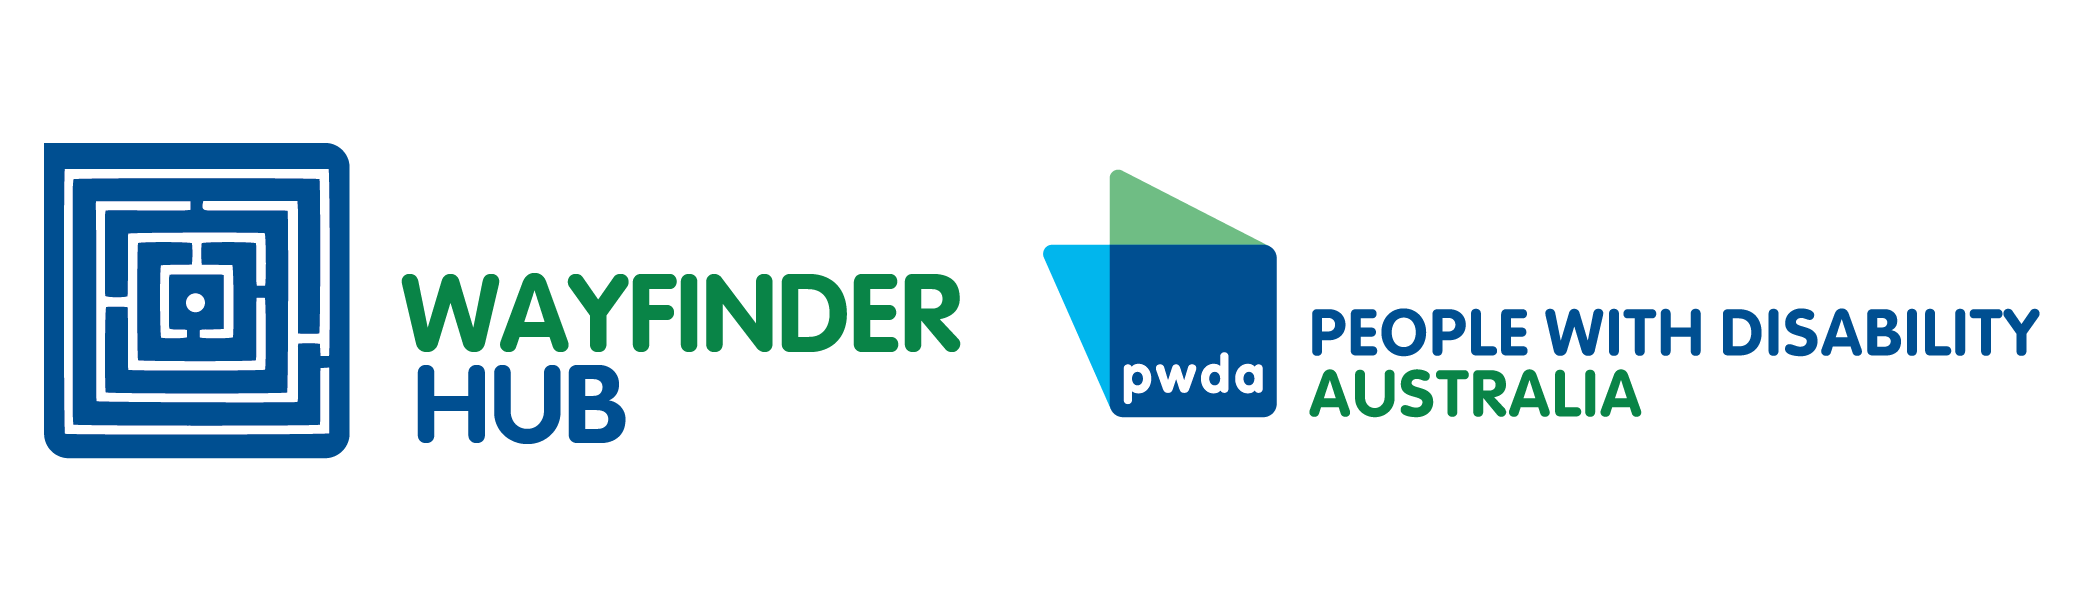 Wayfinder Hub and Pwda logo